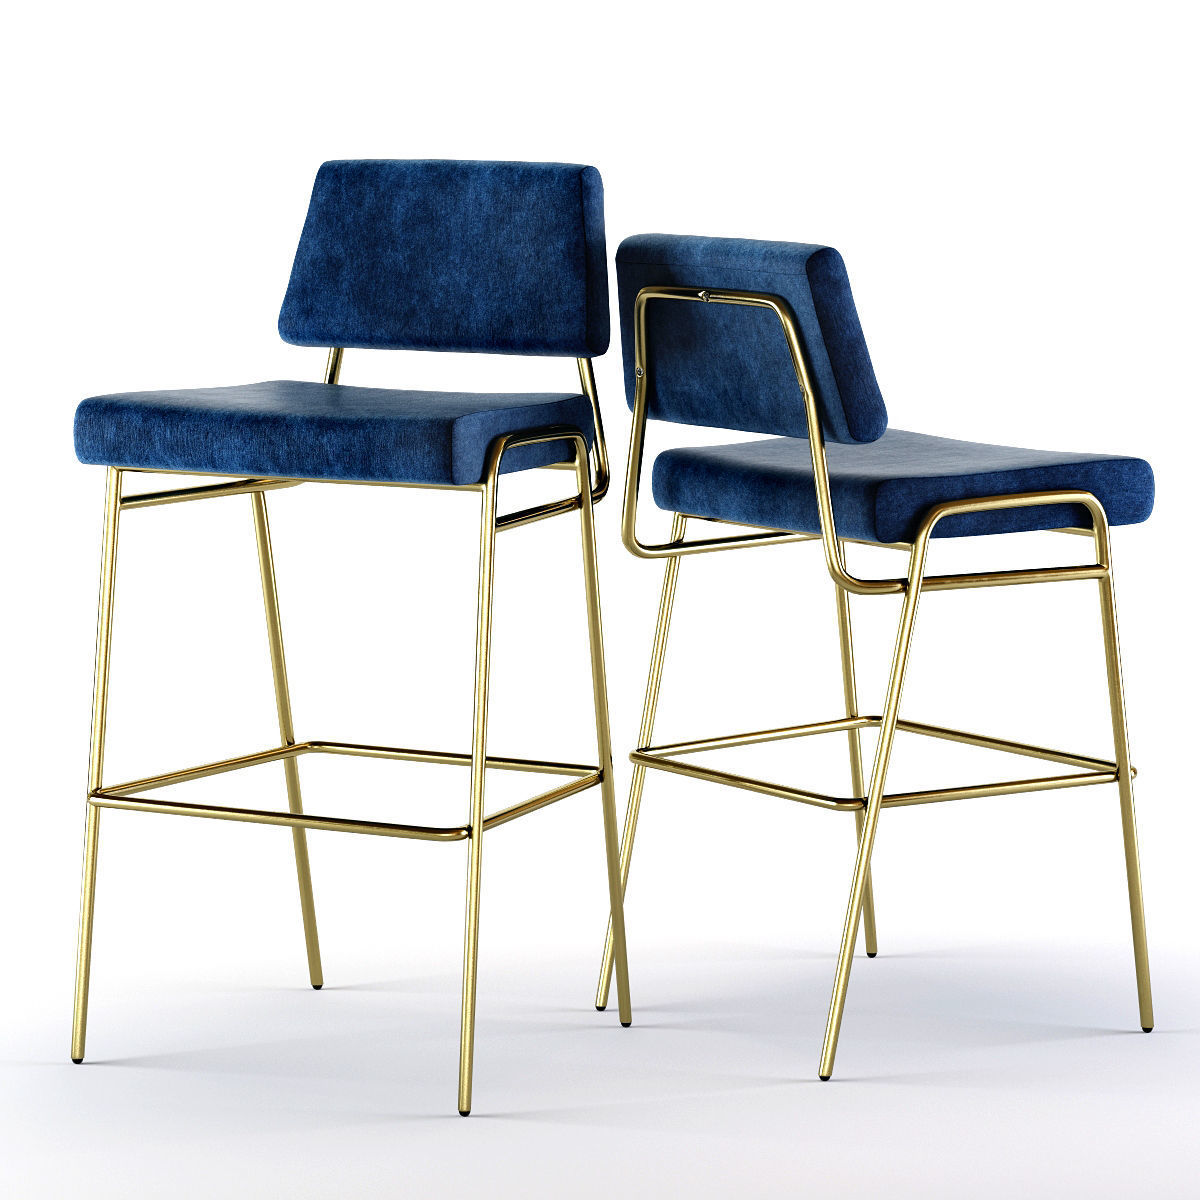 Groovy West Elm Wire Frame Bar And Counter Stools 3D Model Ibusinesslaw Wood Chair Design Ideas Ibusinesslaworg